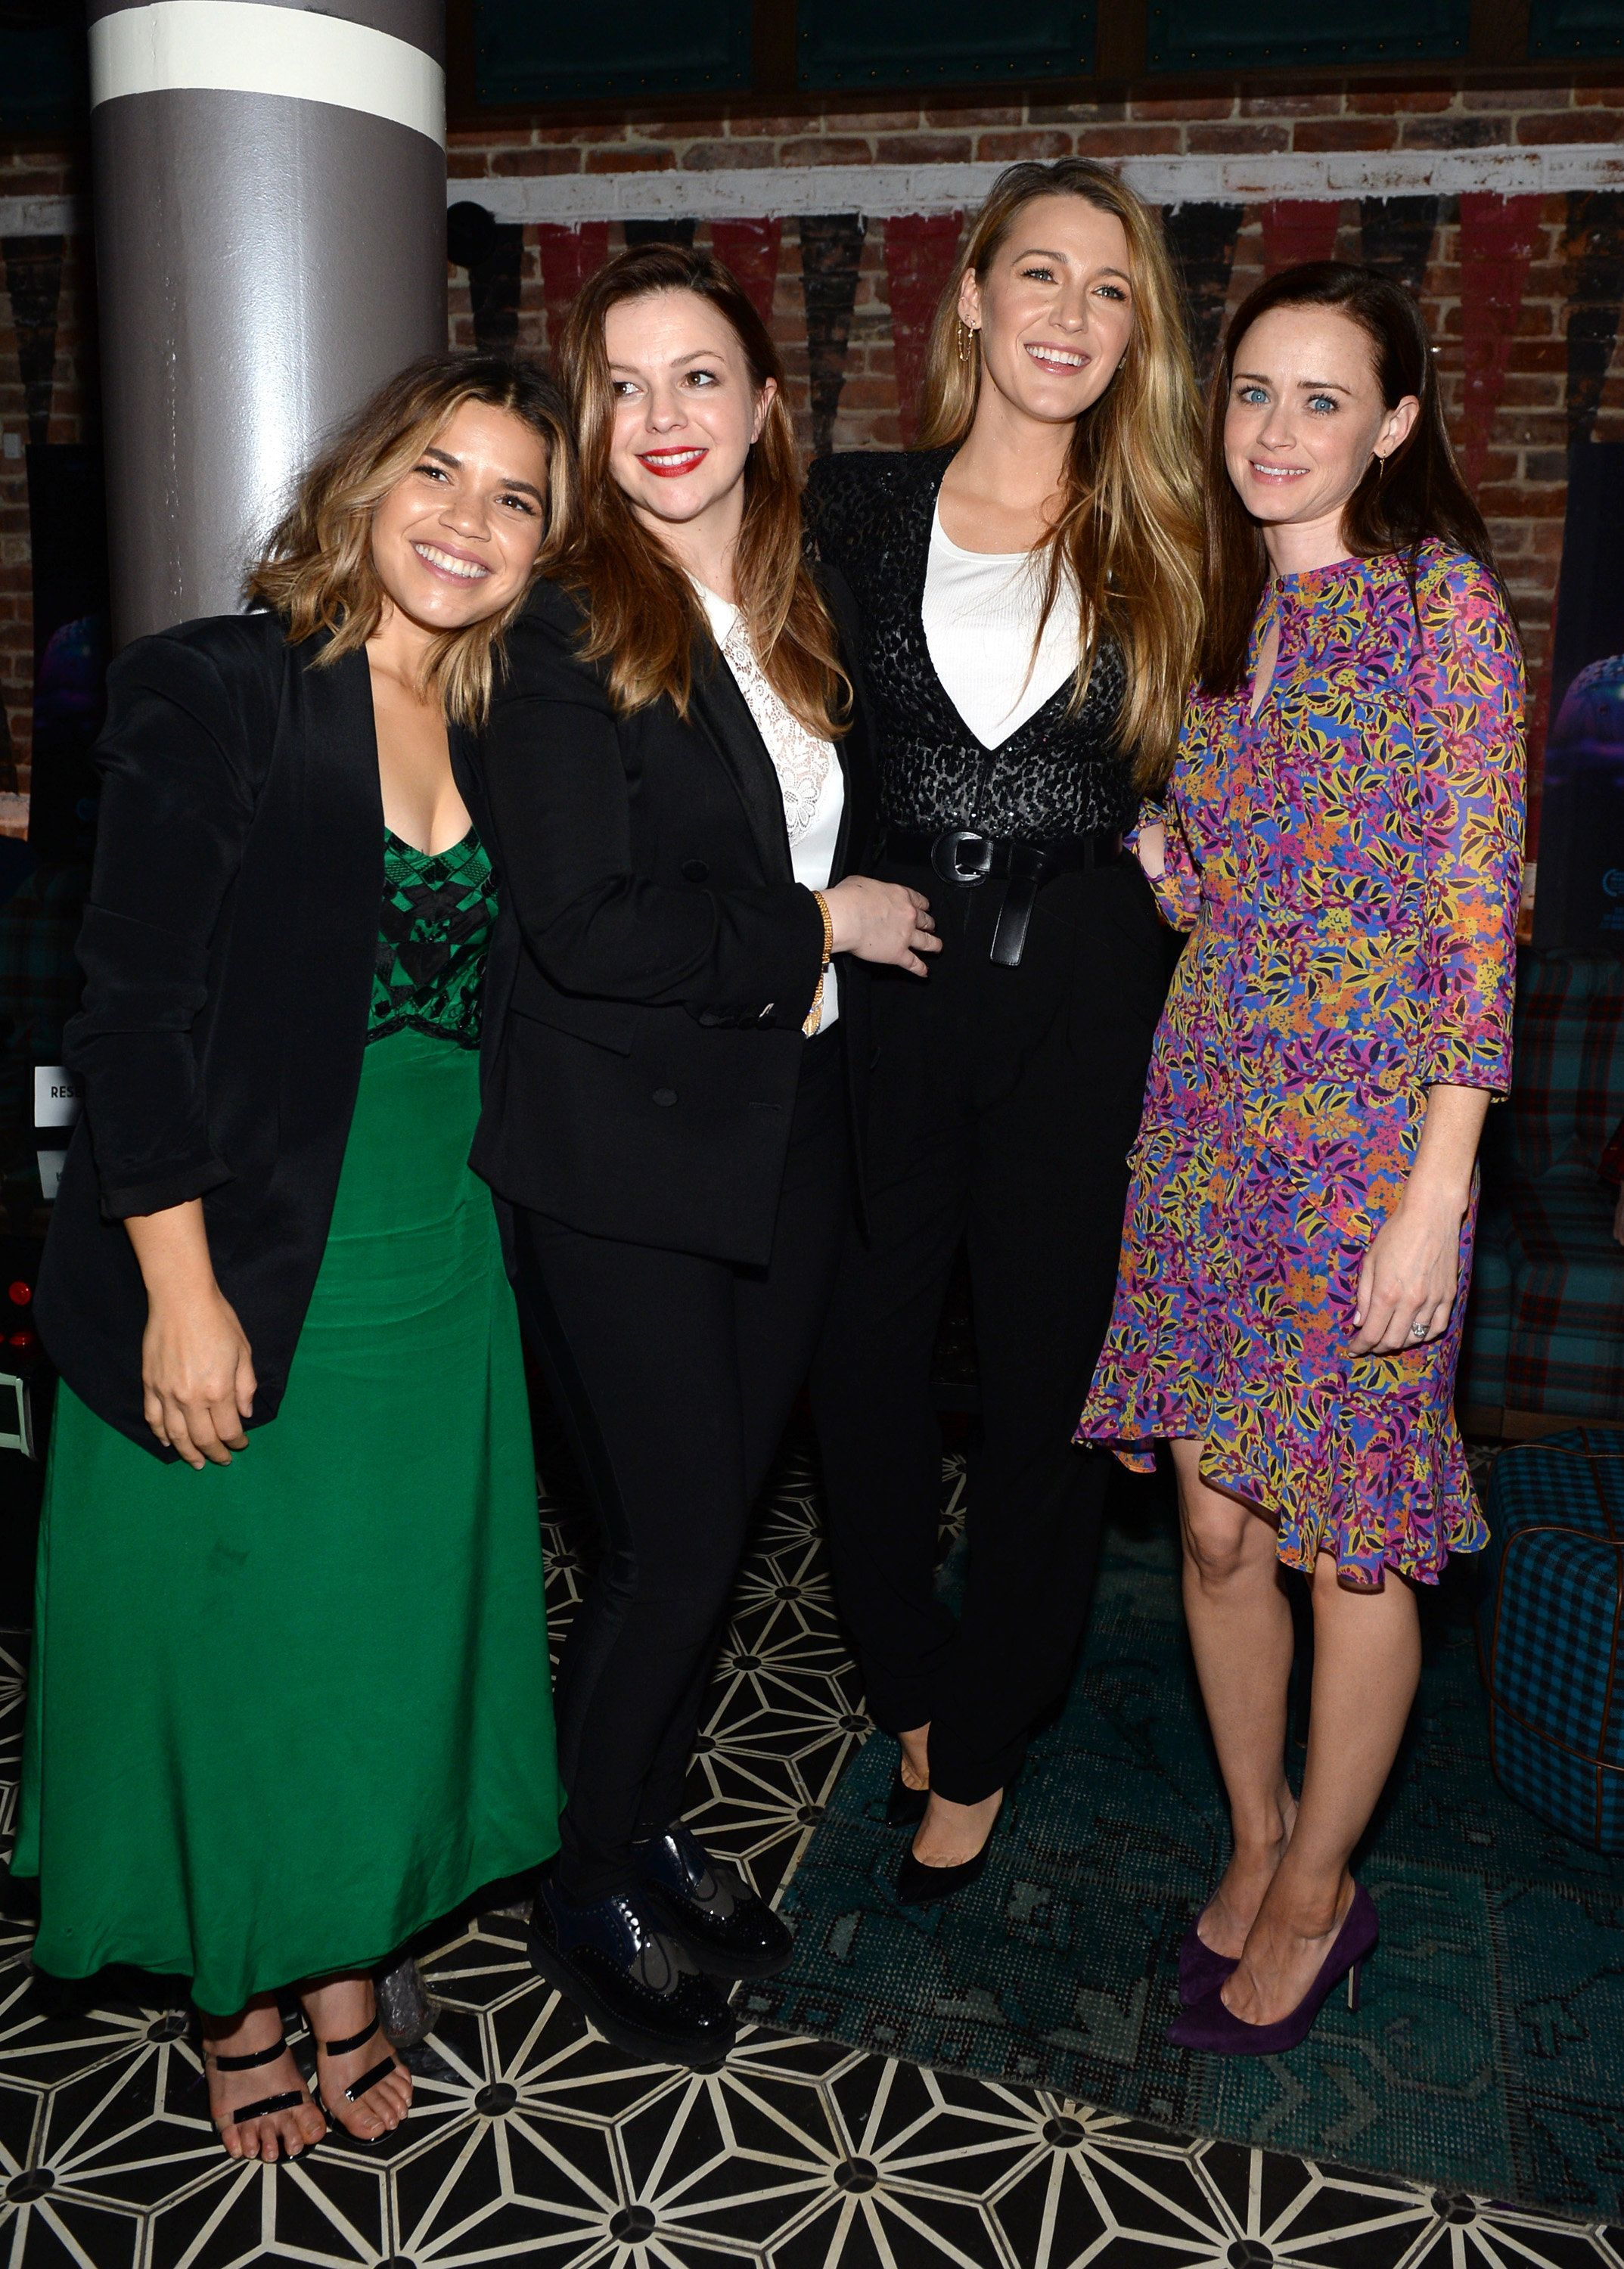 NEW YORK, NY - MAY 15:  (L-R) America Ferrera, Amber Tamblyn, Blake Lively and Alexis Bledel attend the 'Paint It Black' New York premiere after party at Fishbowl at the Dream Hotel on May 15, 2017 in New York City.  (Photo by Andrew Toth/Getty Images)